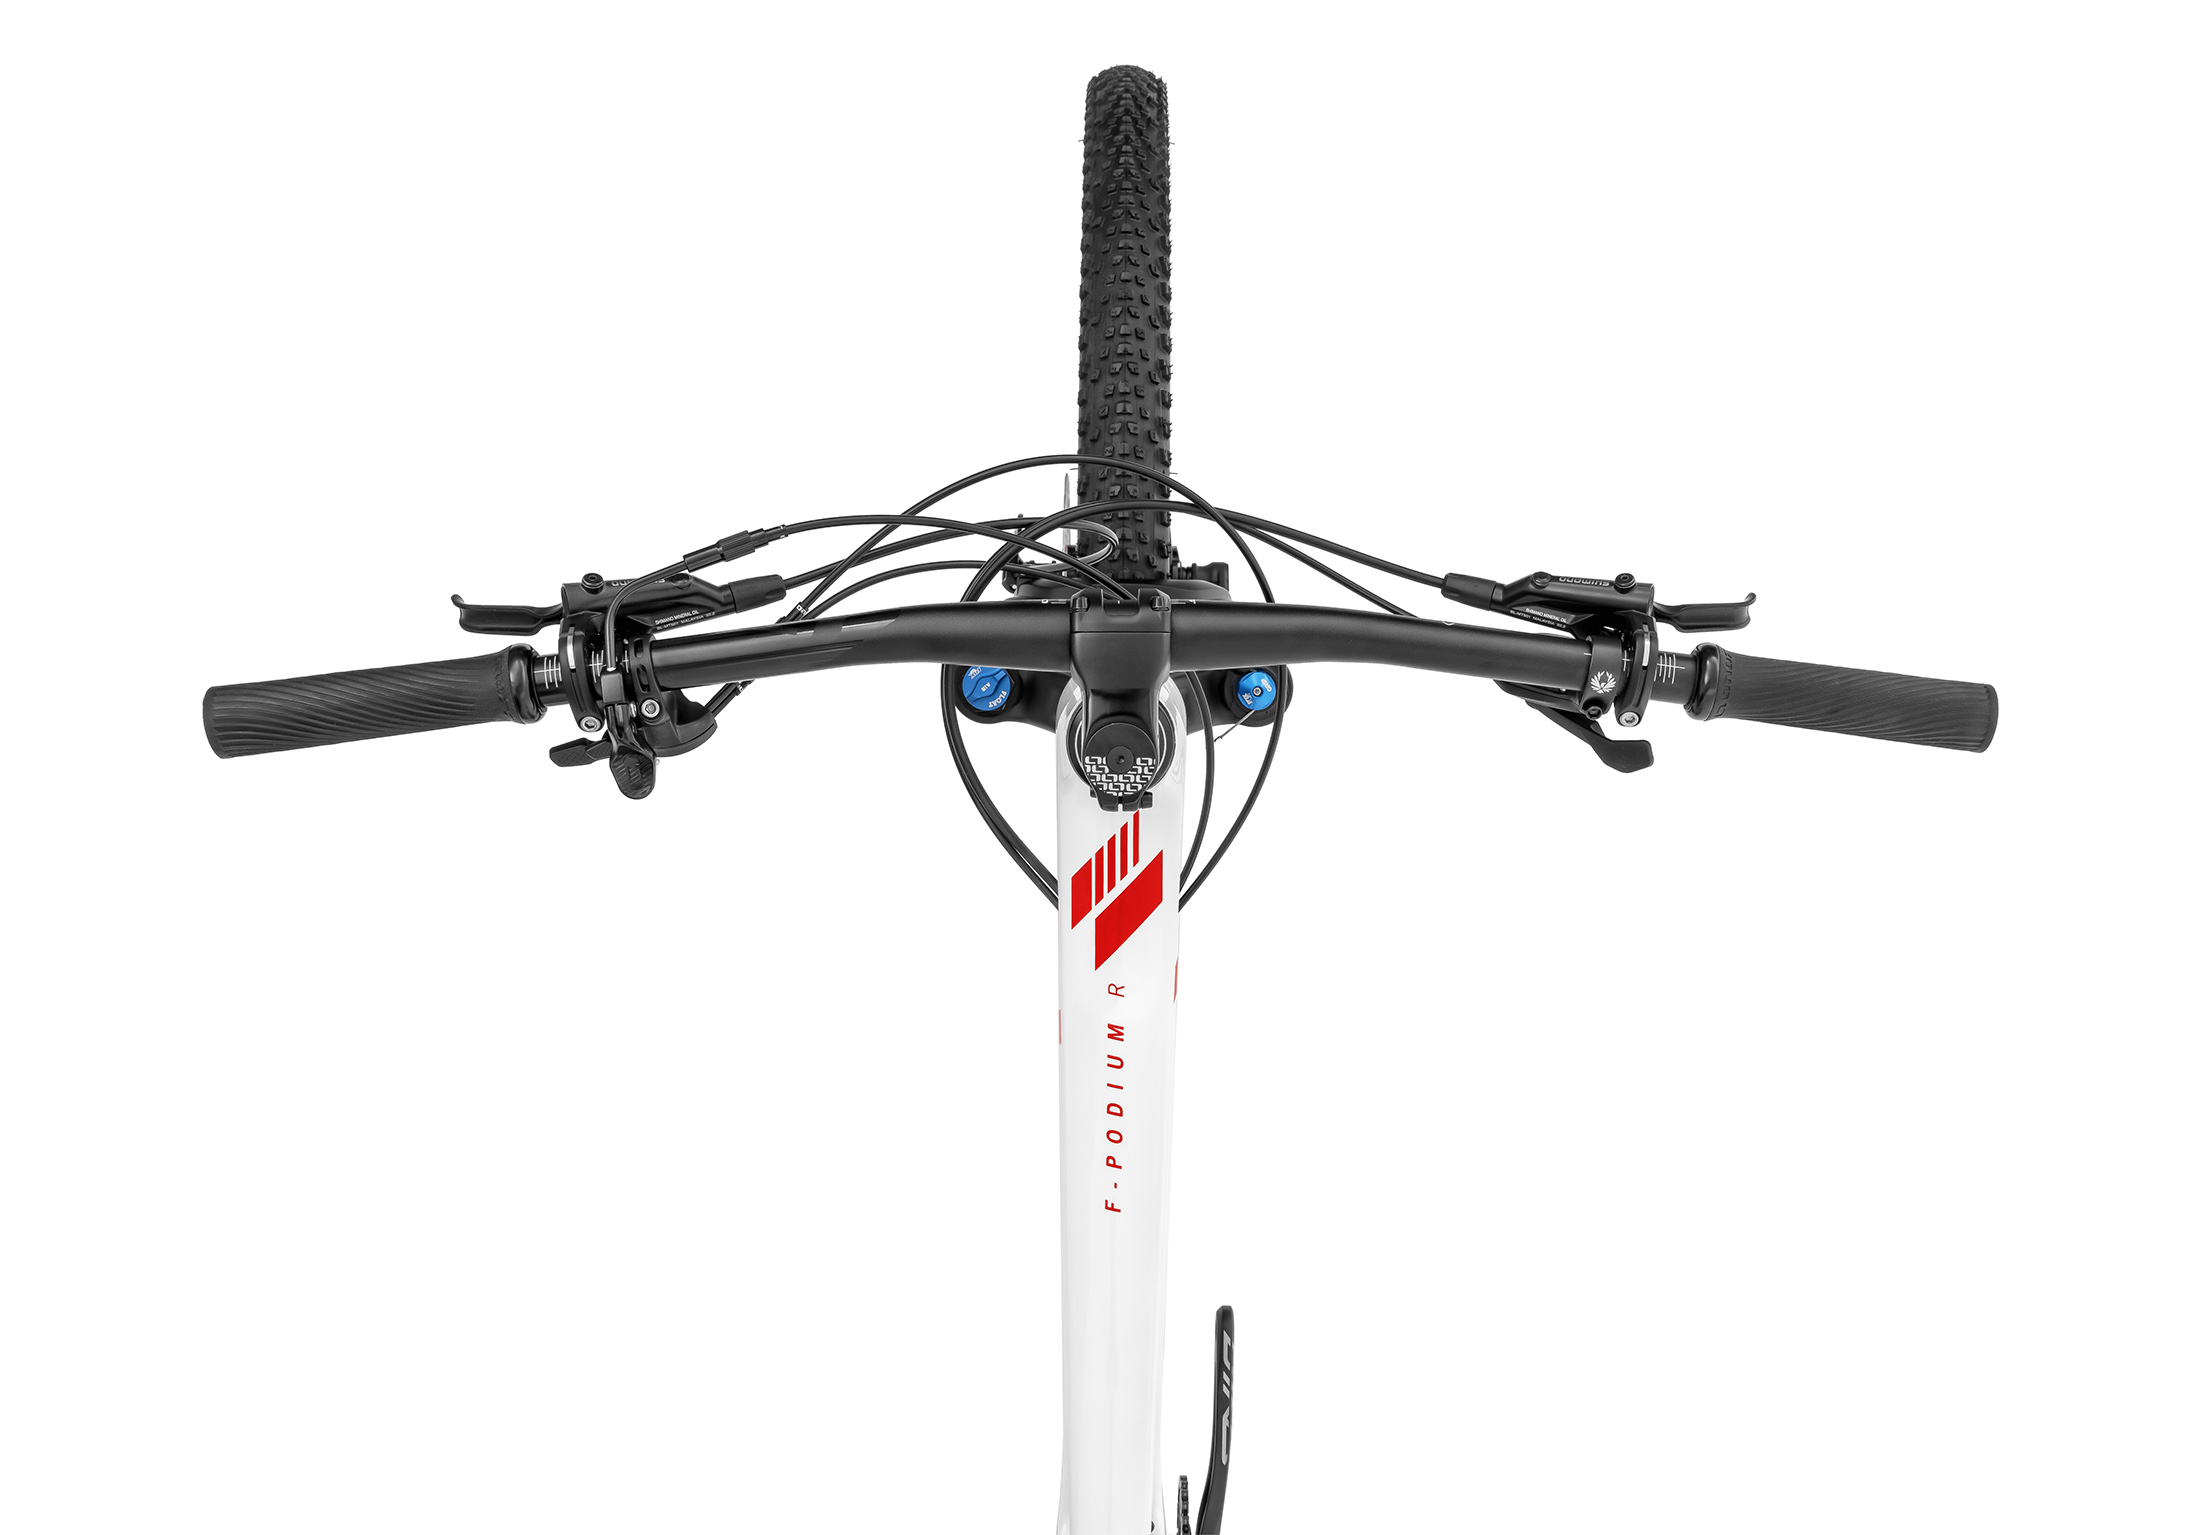 F-Podium Carbon DC R, white/carbon/flame red, 2020